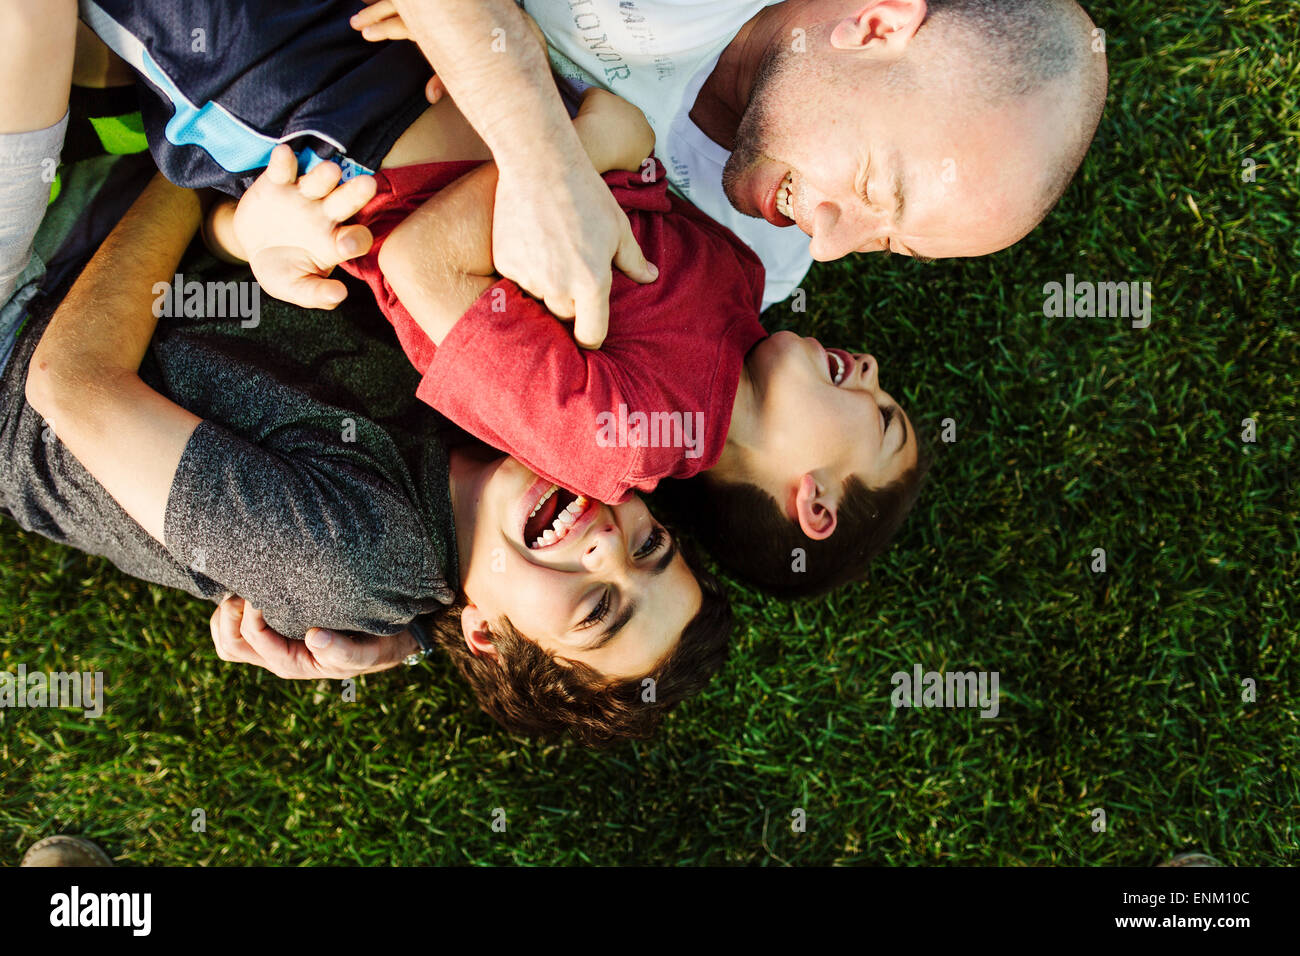 A hispanic family enjoys time together at a park in San Diego, Ca. - Stock Image